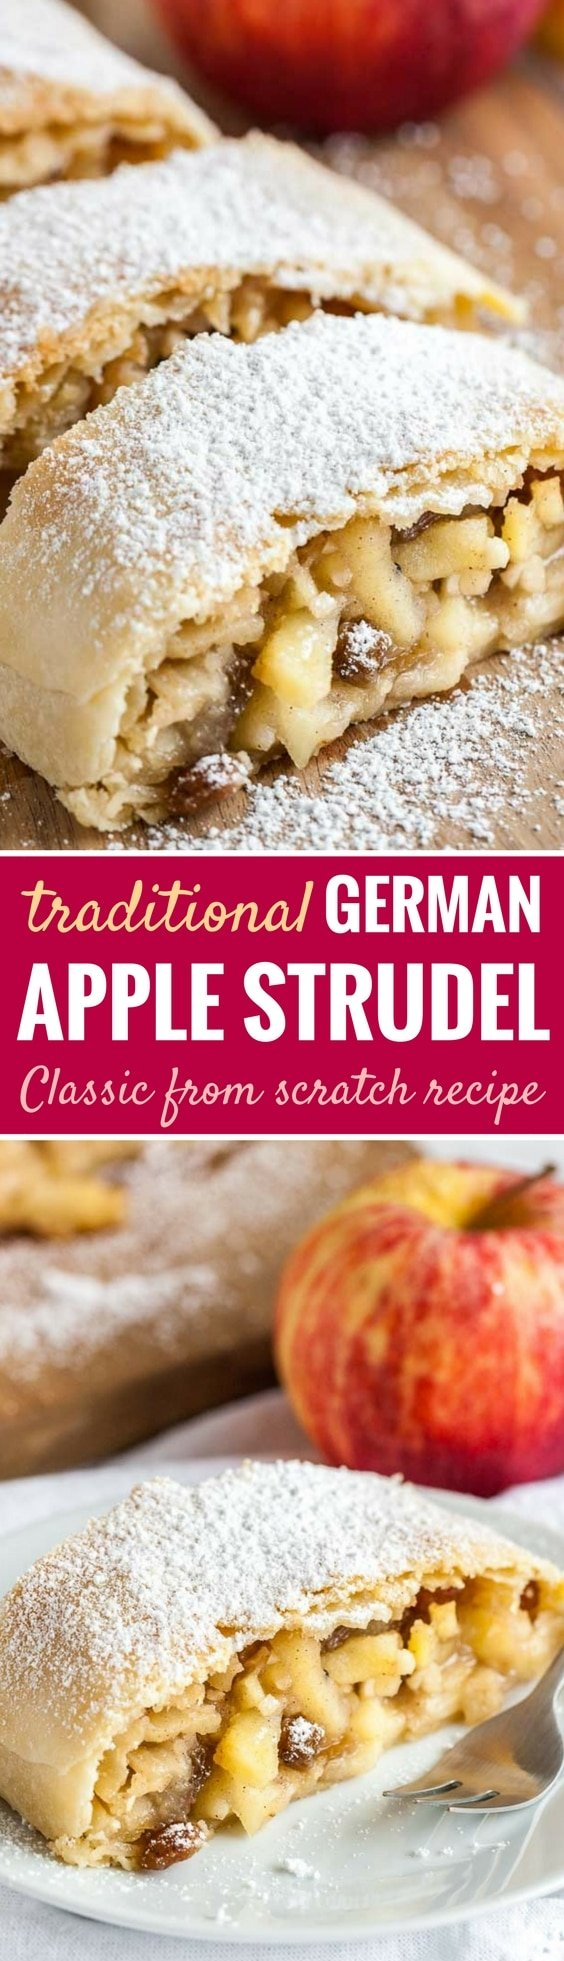 Apple Strudel is much easier to make from scratch than you think and tastes amazing dusted with powdered sugar! Everyone will love this traditional Apfelstrudel that has a flaky crust and is filled with juicy spiced apples.